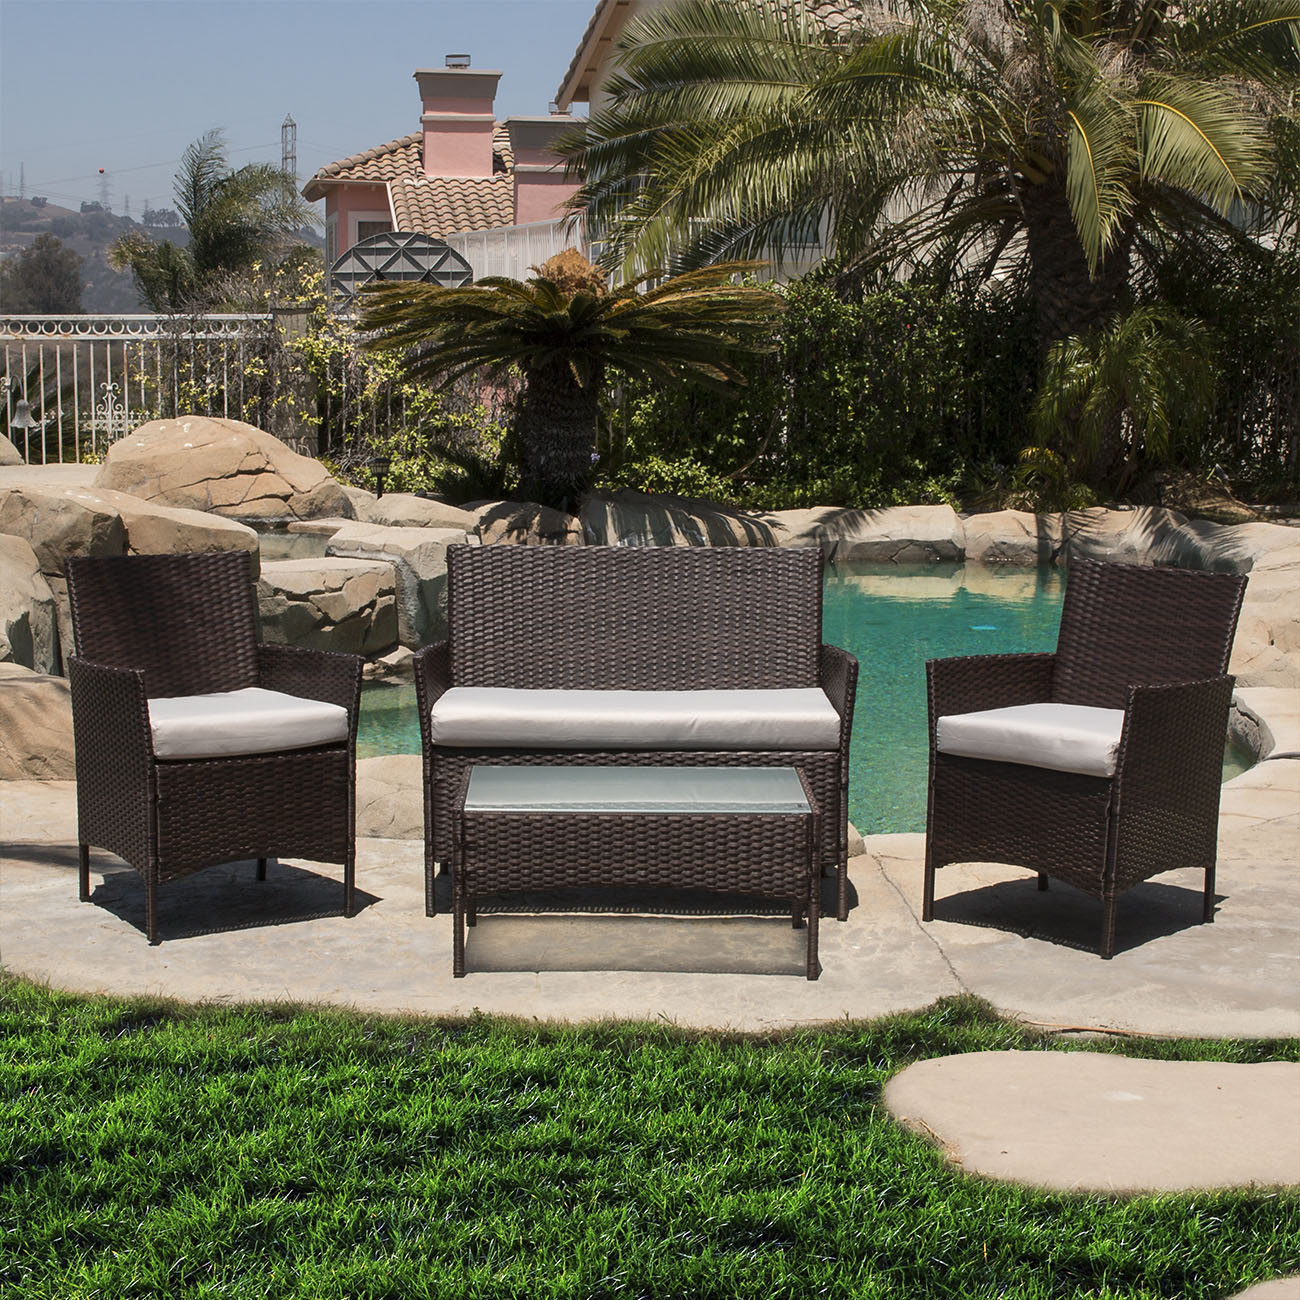 Outdoor Patio Couch Set Of 4 Pc Rattan Furniture Set Outdoor Patio Garden Sectional